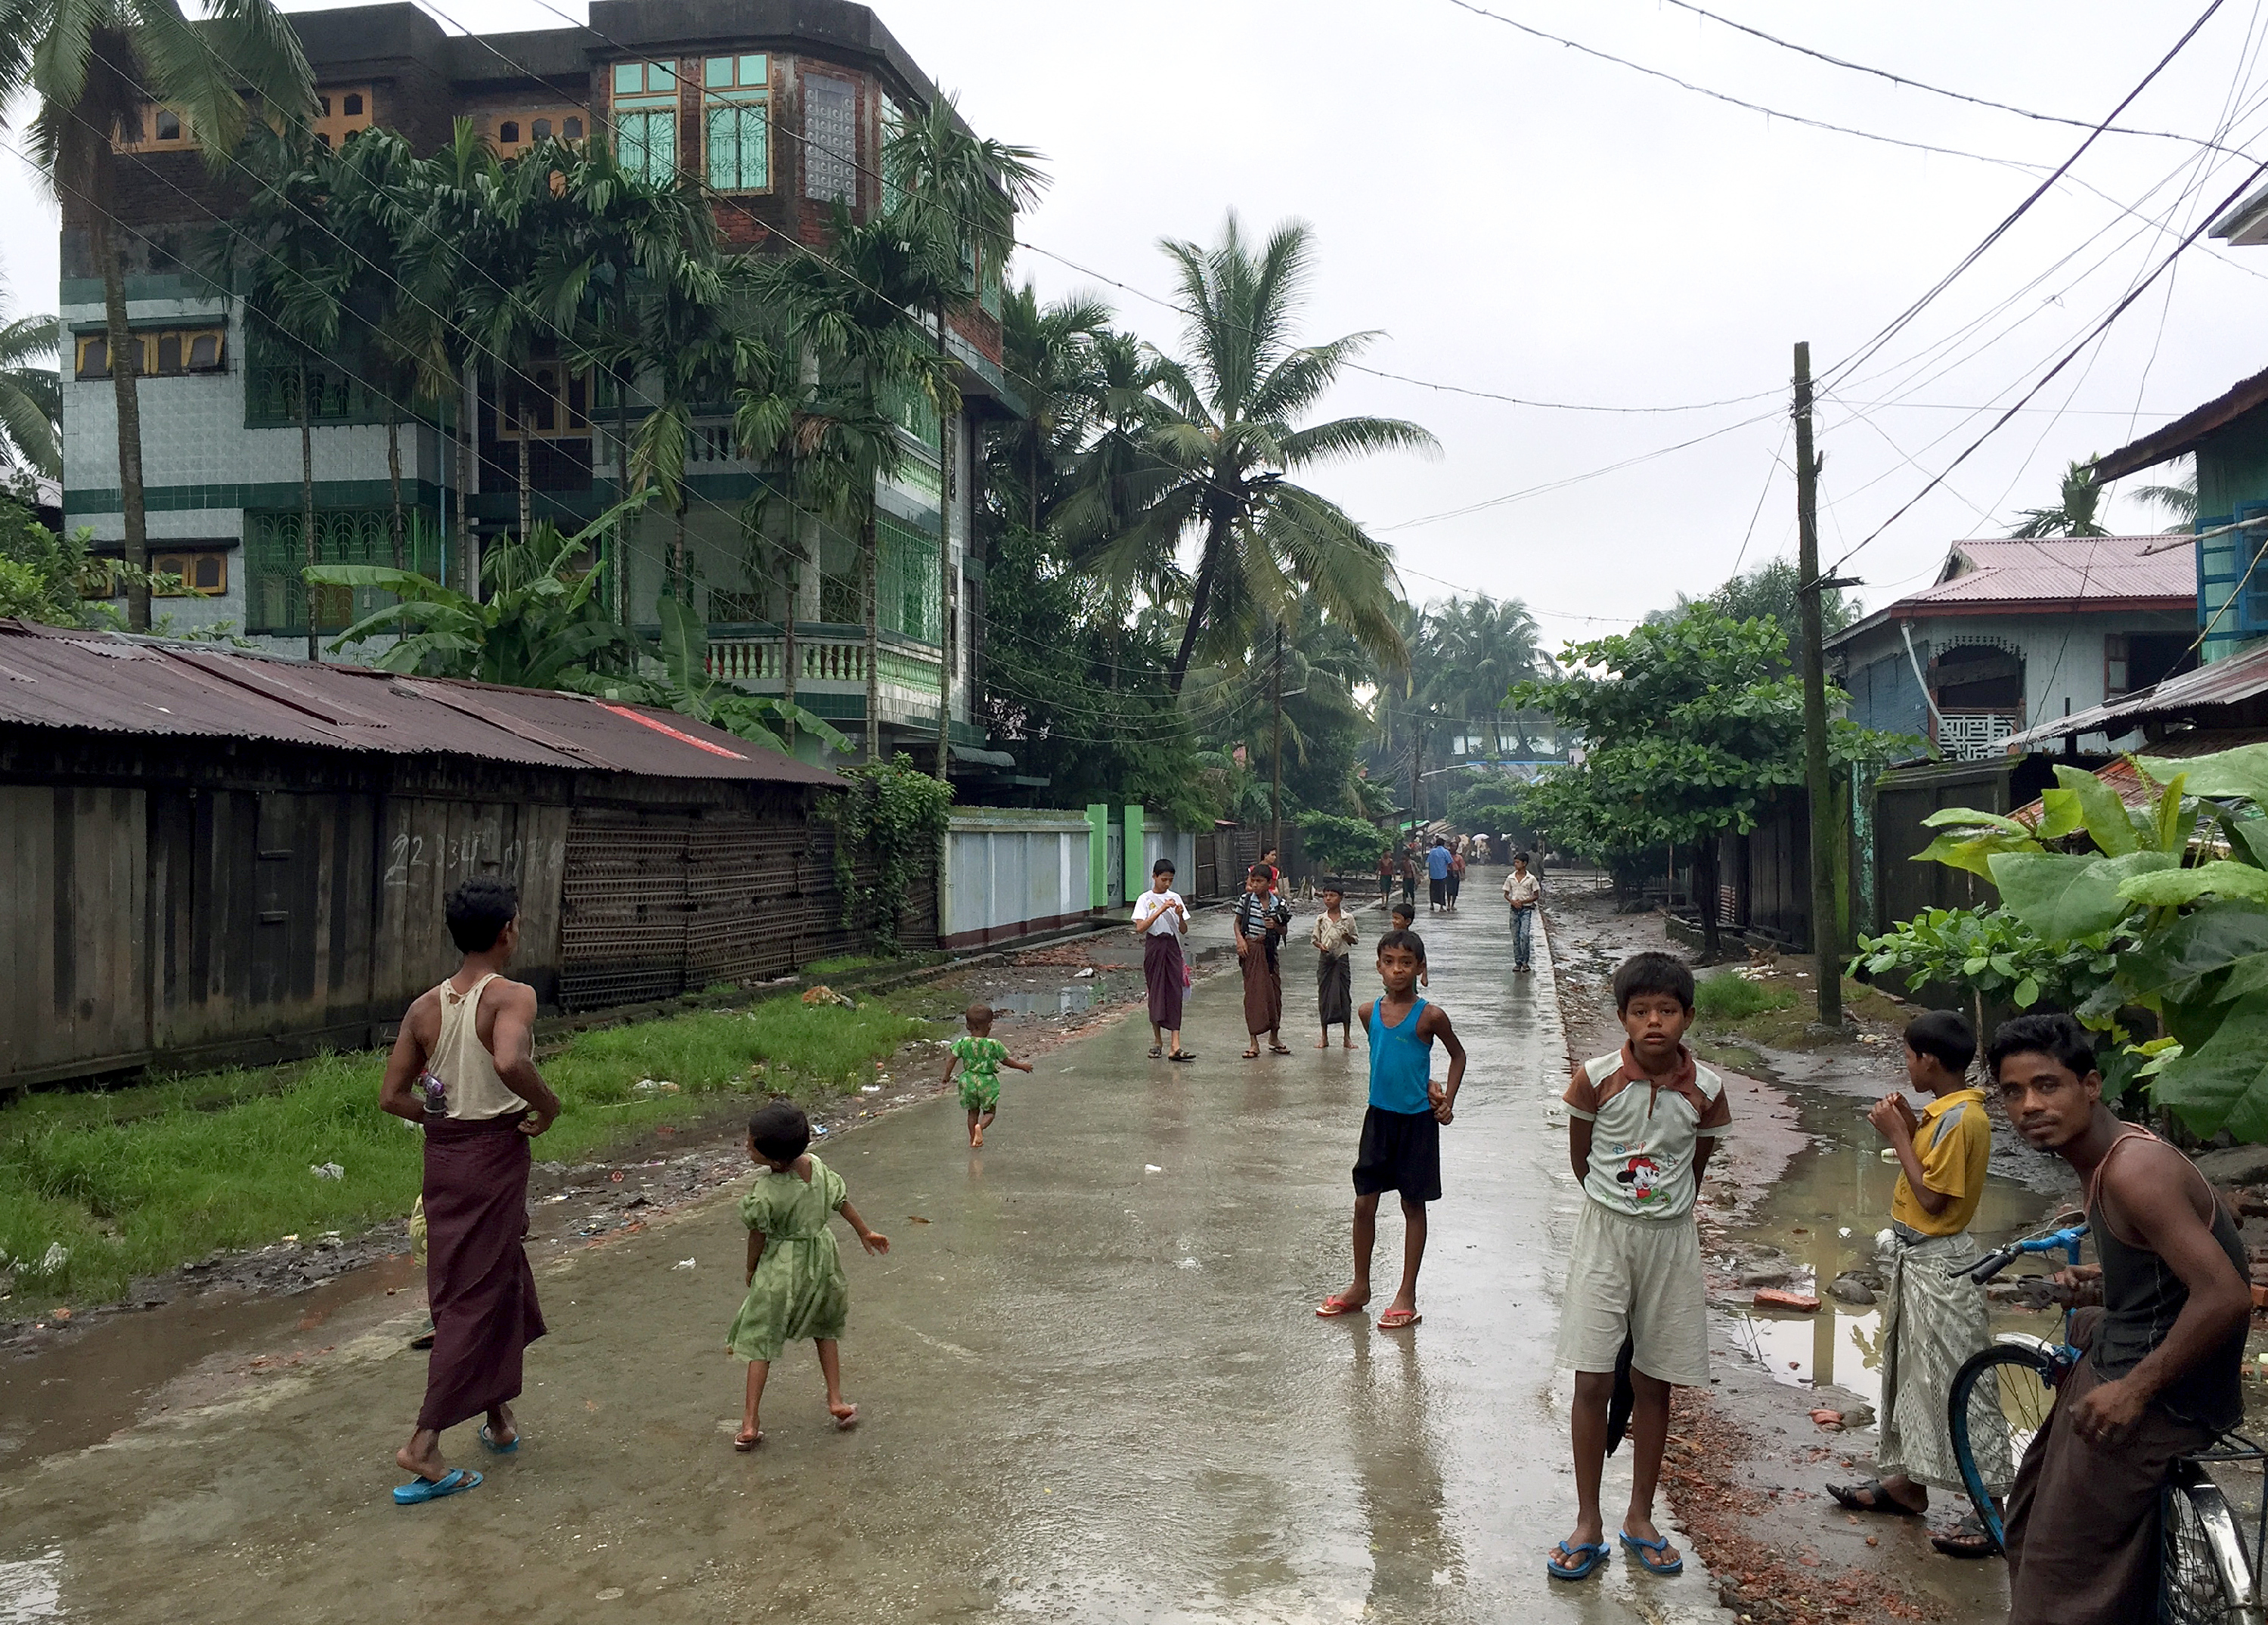 Barricaded In, Myanmar's Rohingya Struggle To Survive In Ghettos And Camps